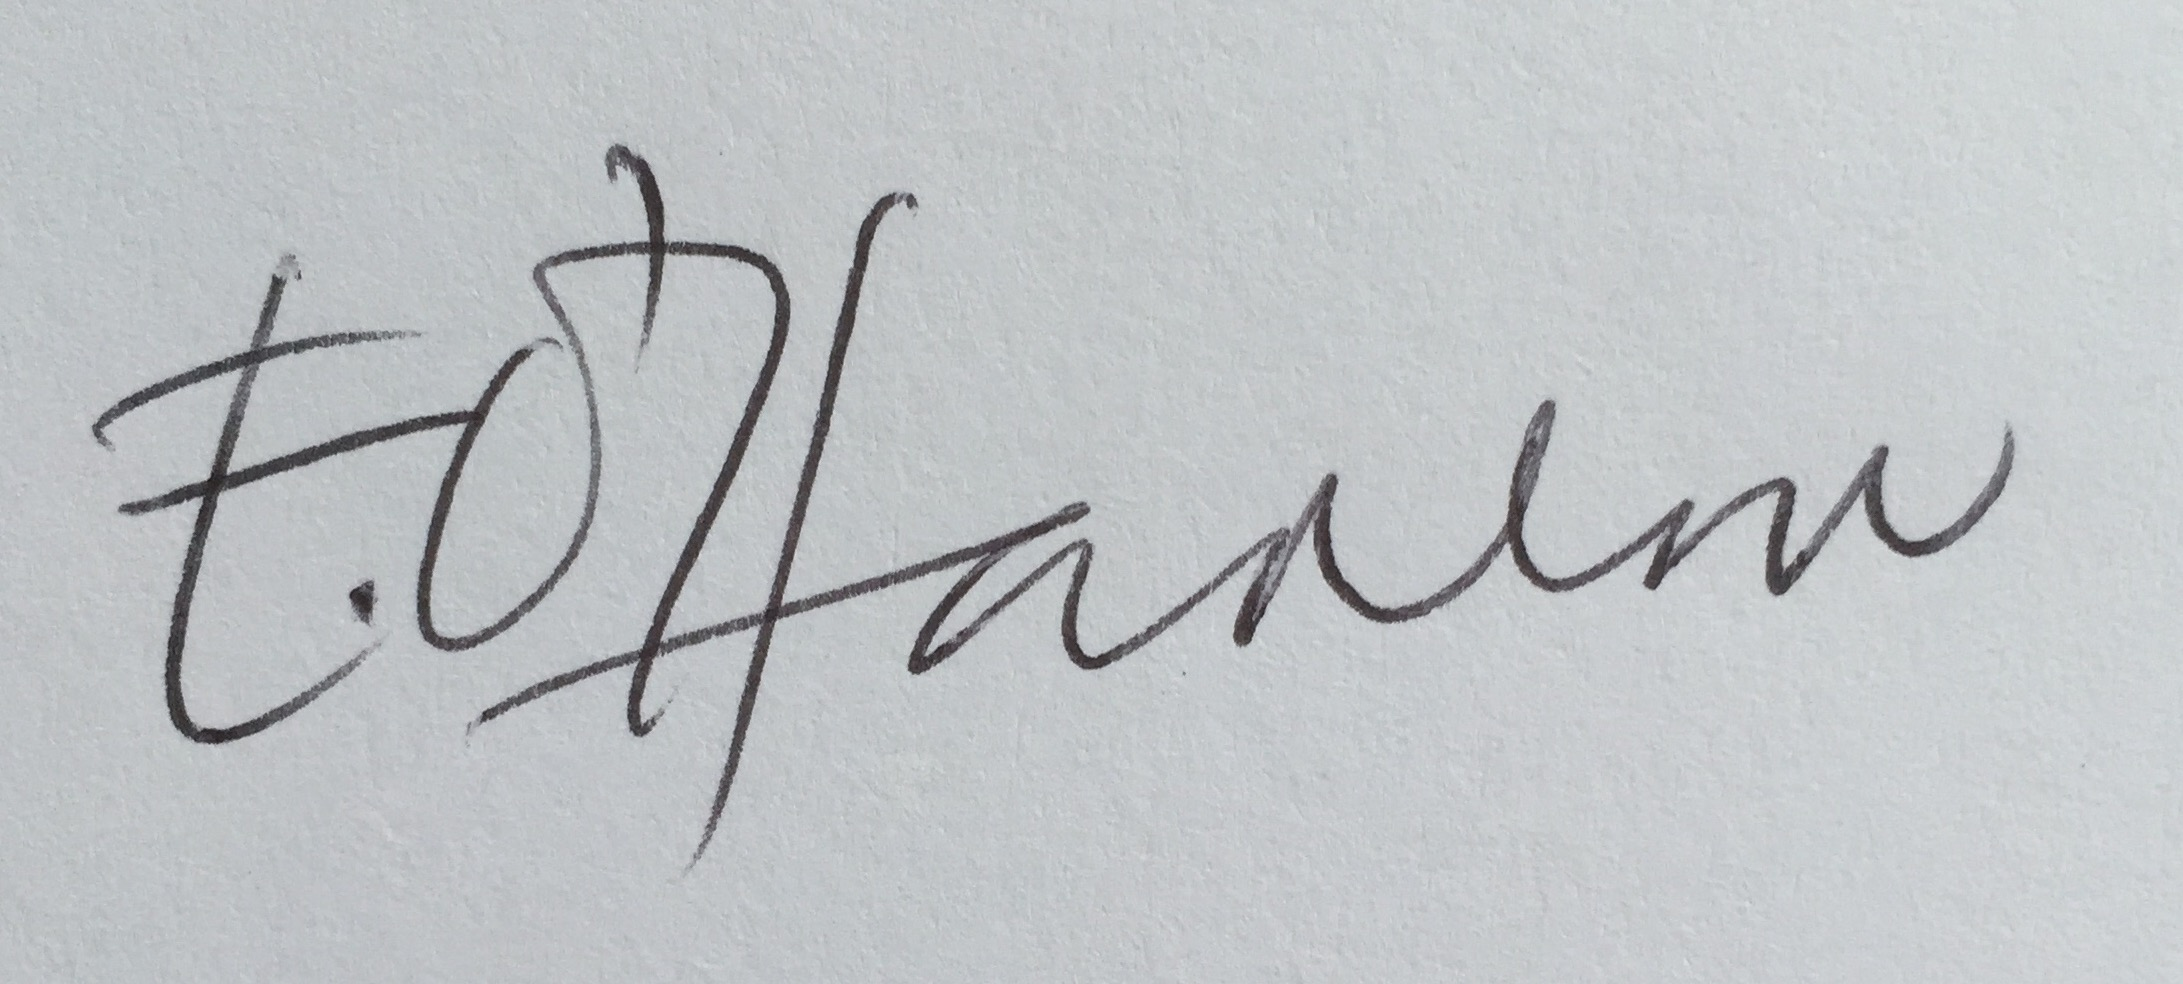 Elvie O'Hanlon's Signature